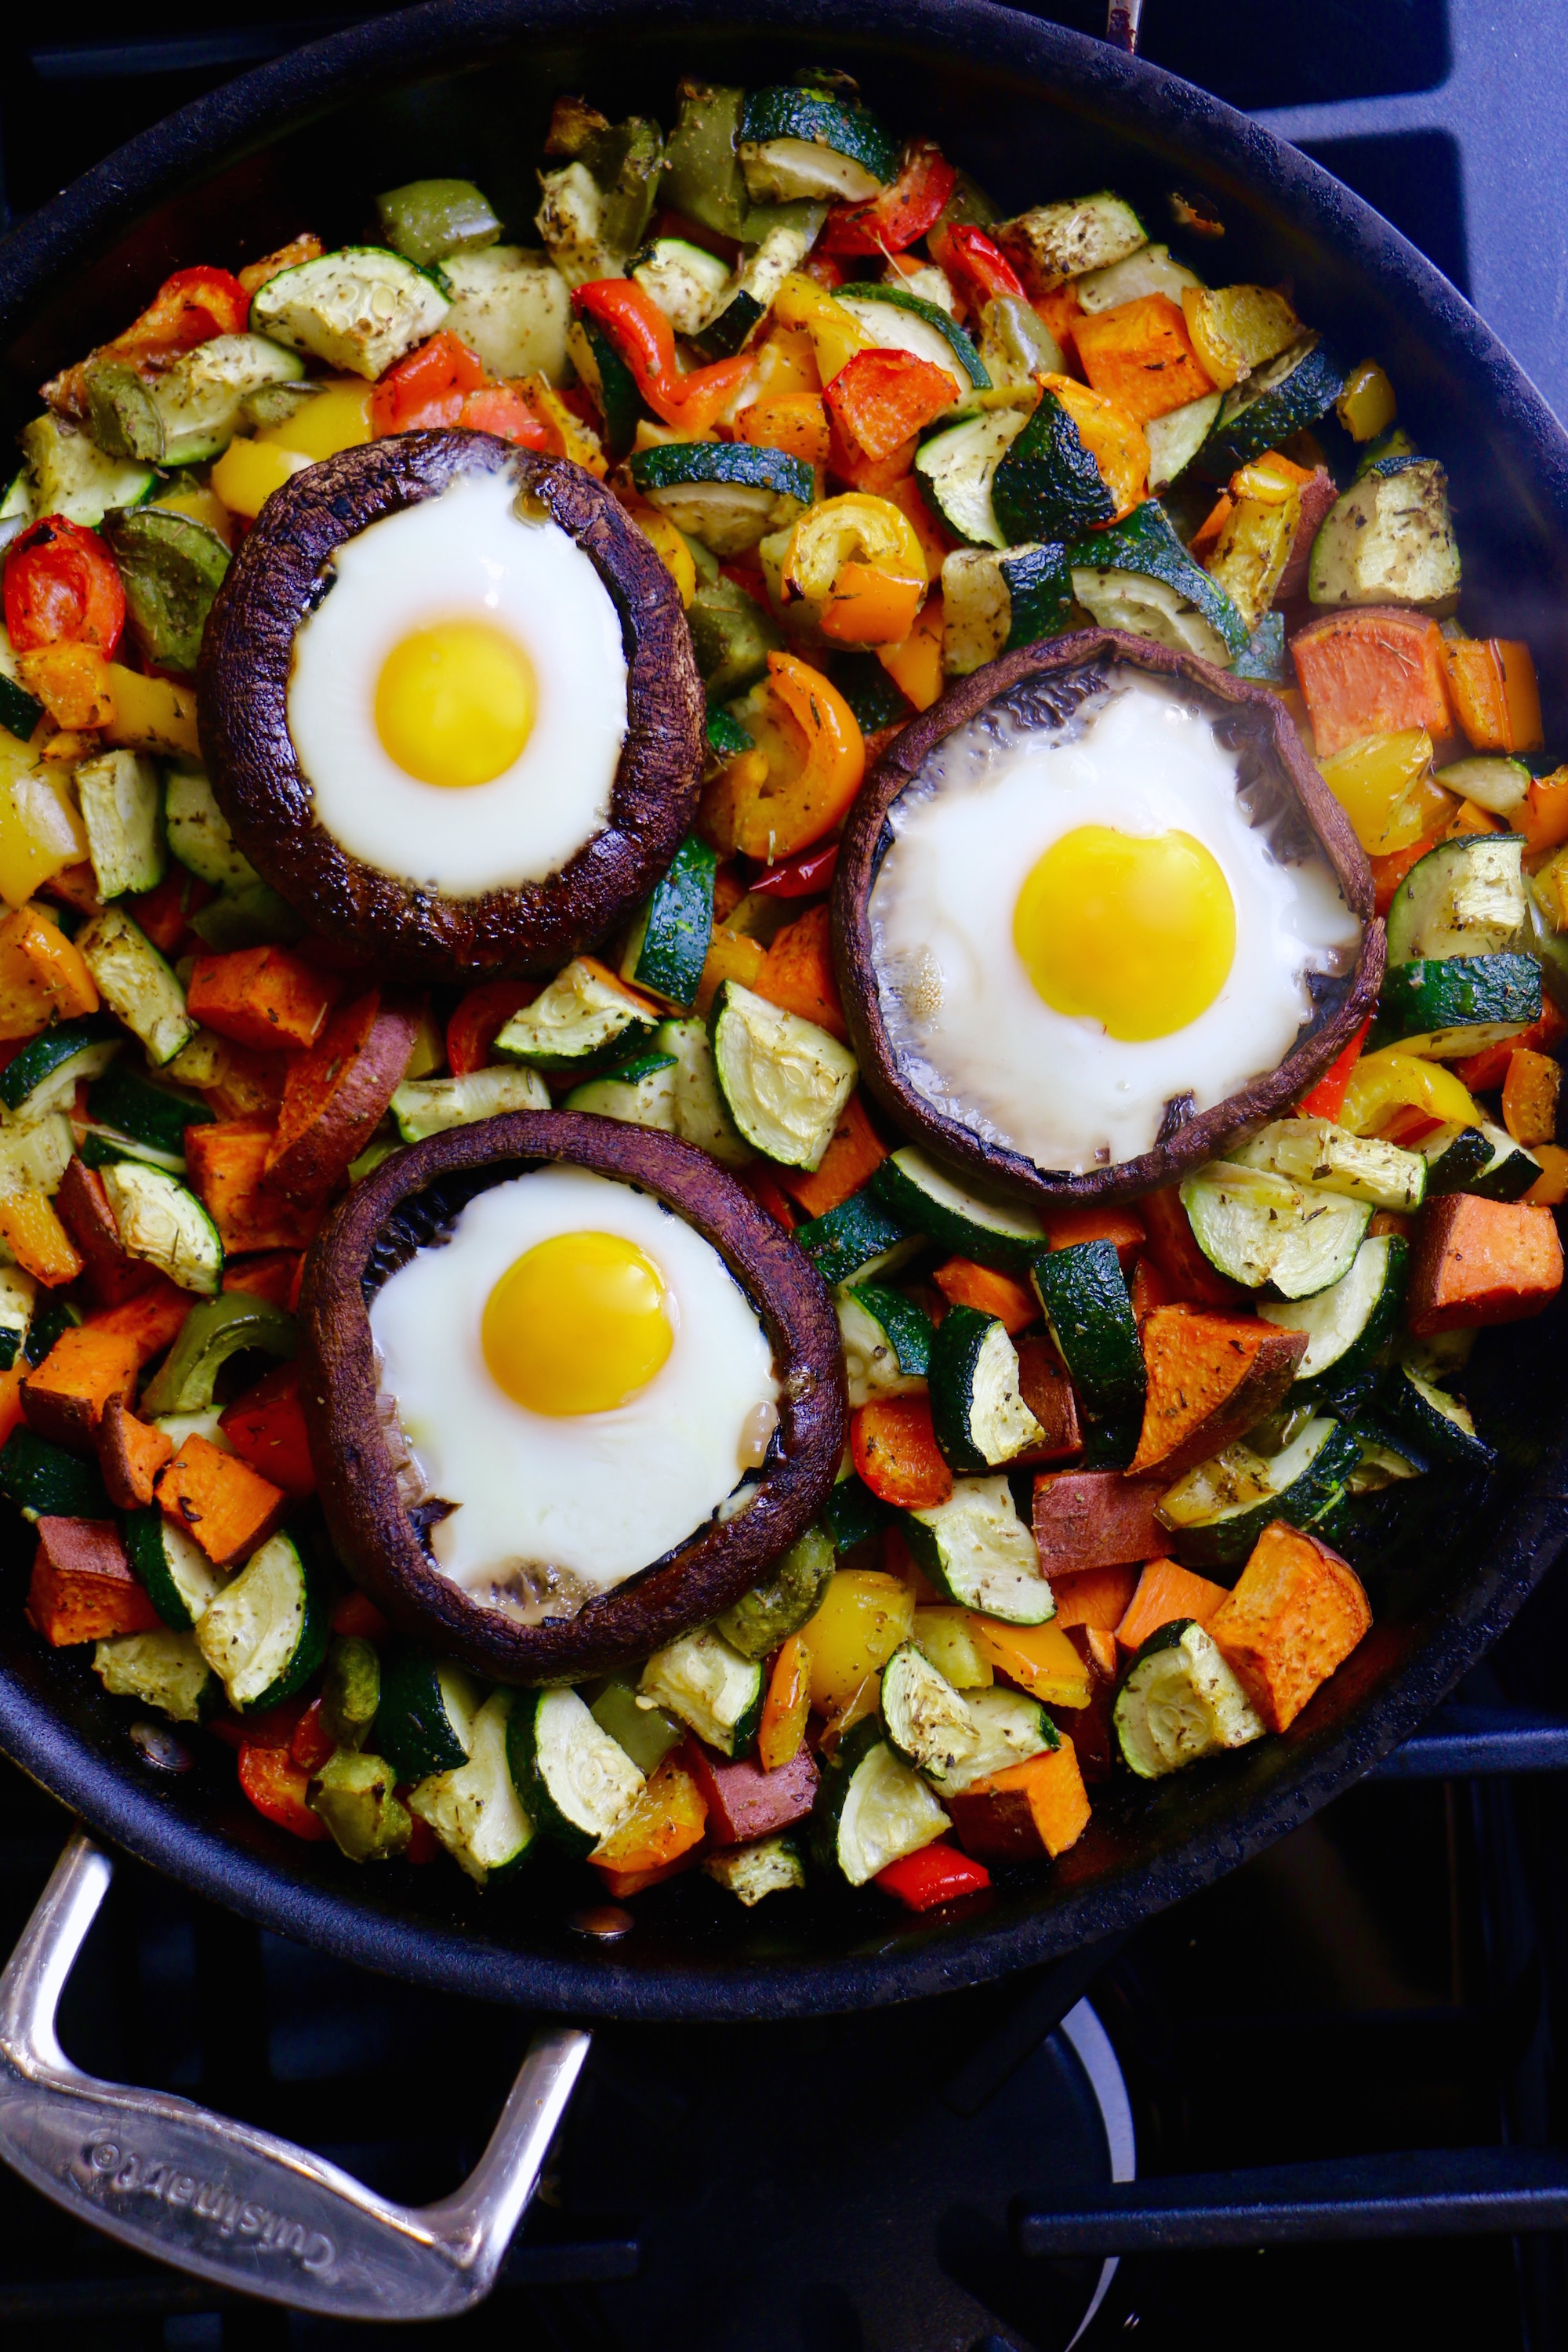 This hearty, delicious Portobello Mushroom Egg Bake with Colorful Roasted Veggies makes an excellent healthy breakfast!